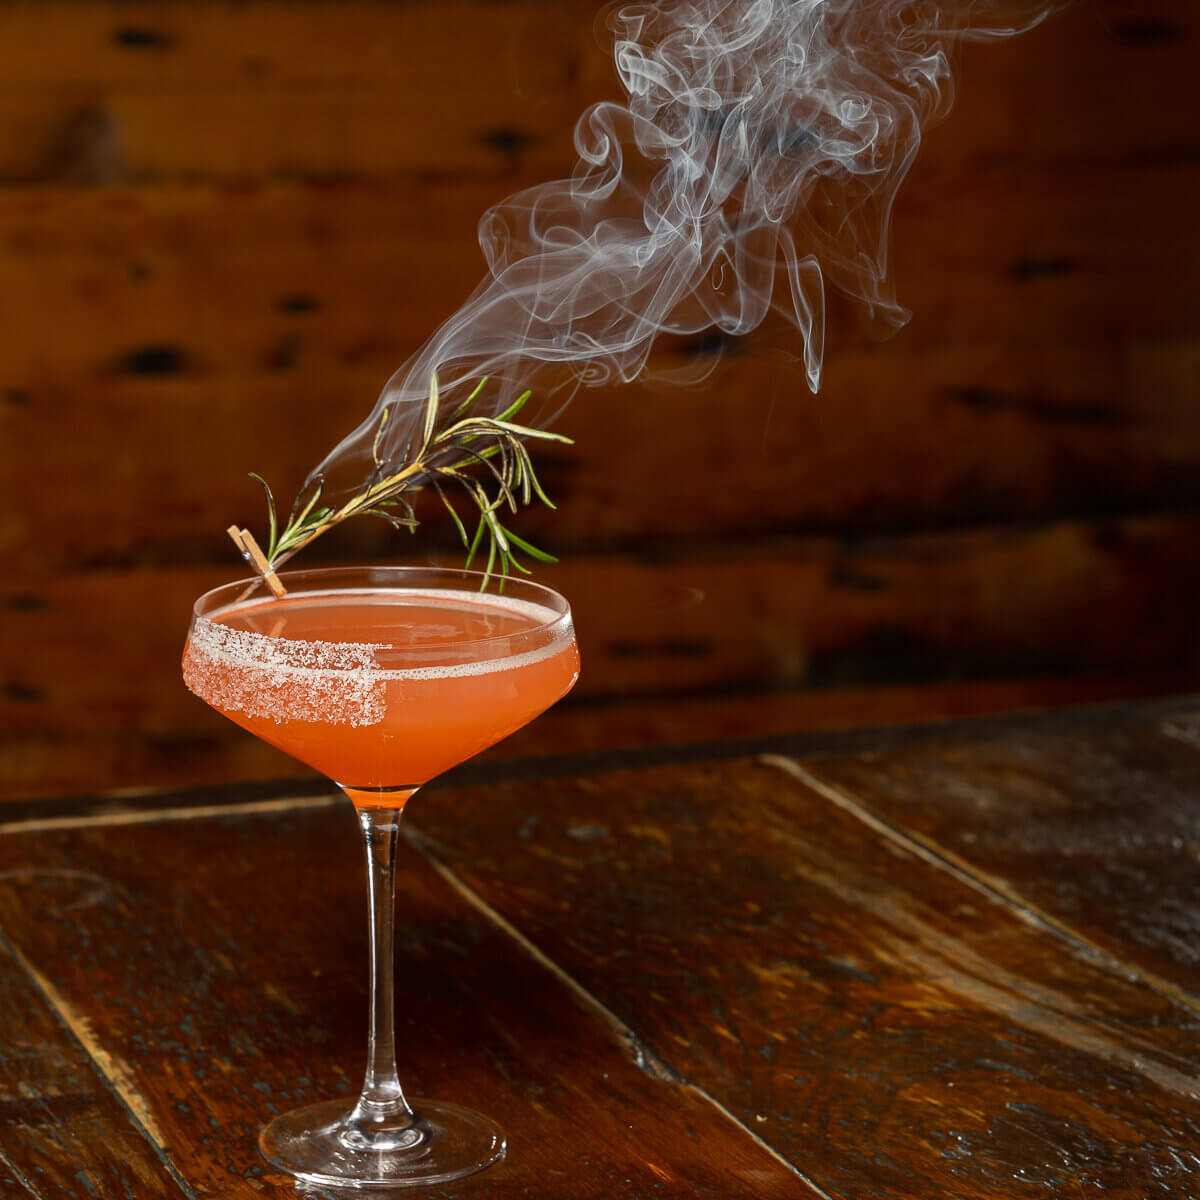 A margarita with smoking herbs, only1andywright photography stands out